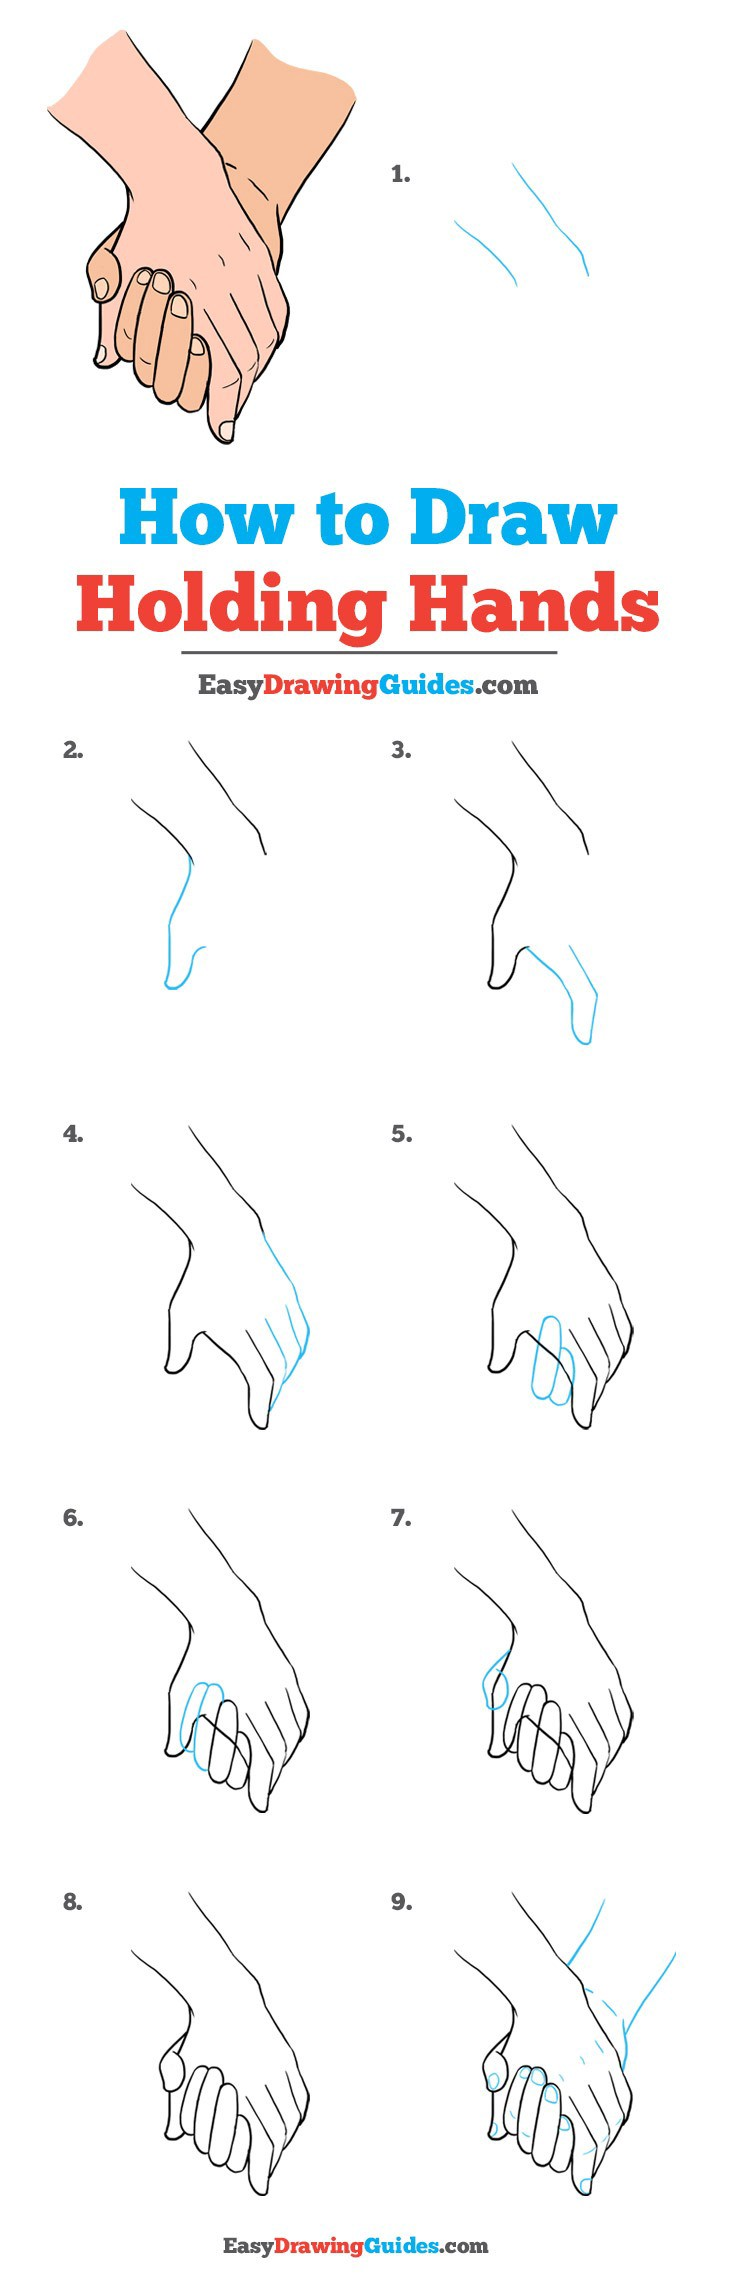 Drawing Holding Hands : drawing, holding, hands, Holding, Hands, Howto, Techno